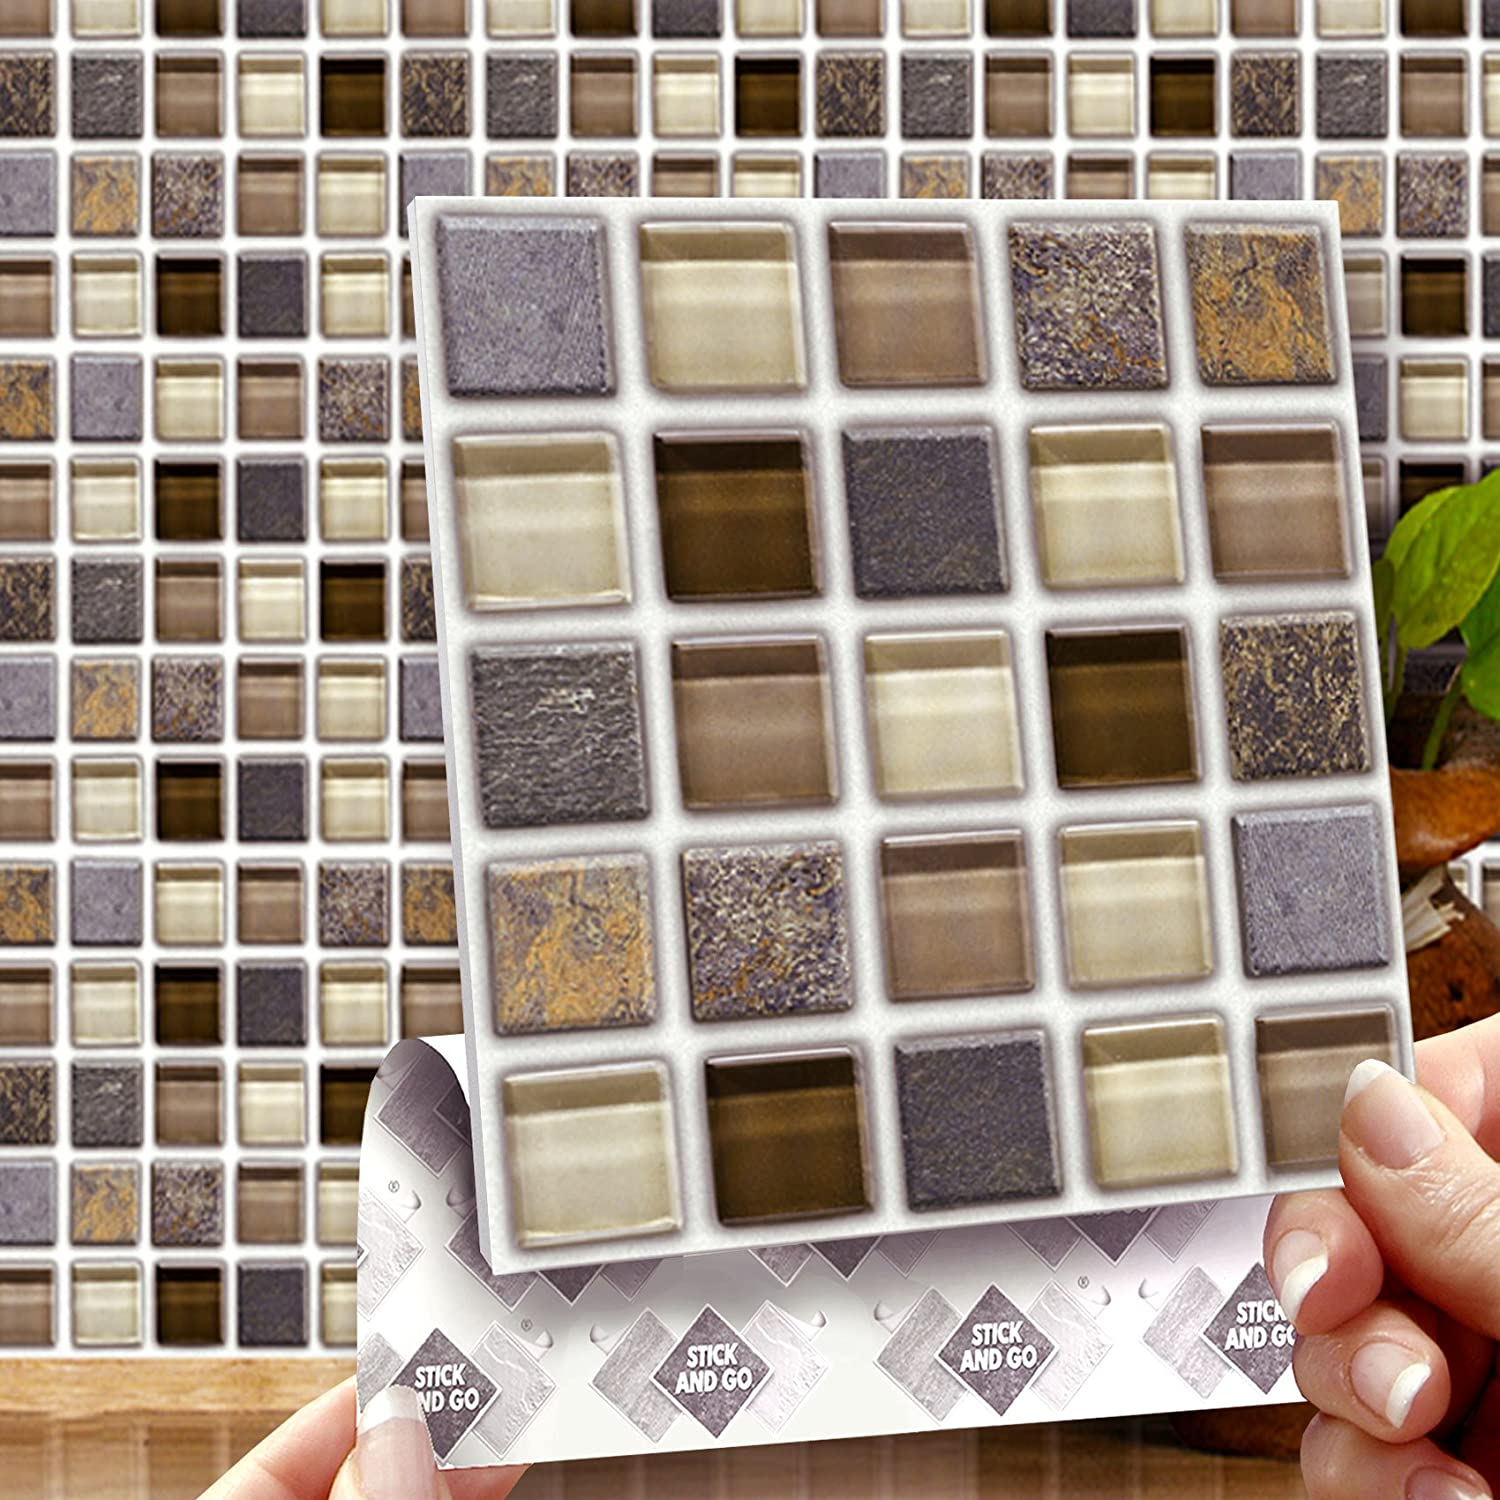 GLASS STONE MOSAIC EFFECT WALL TILES: Box Of 8 Tiles Stick And Go Wall Tiles  6 Part 58